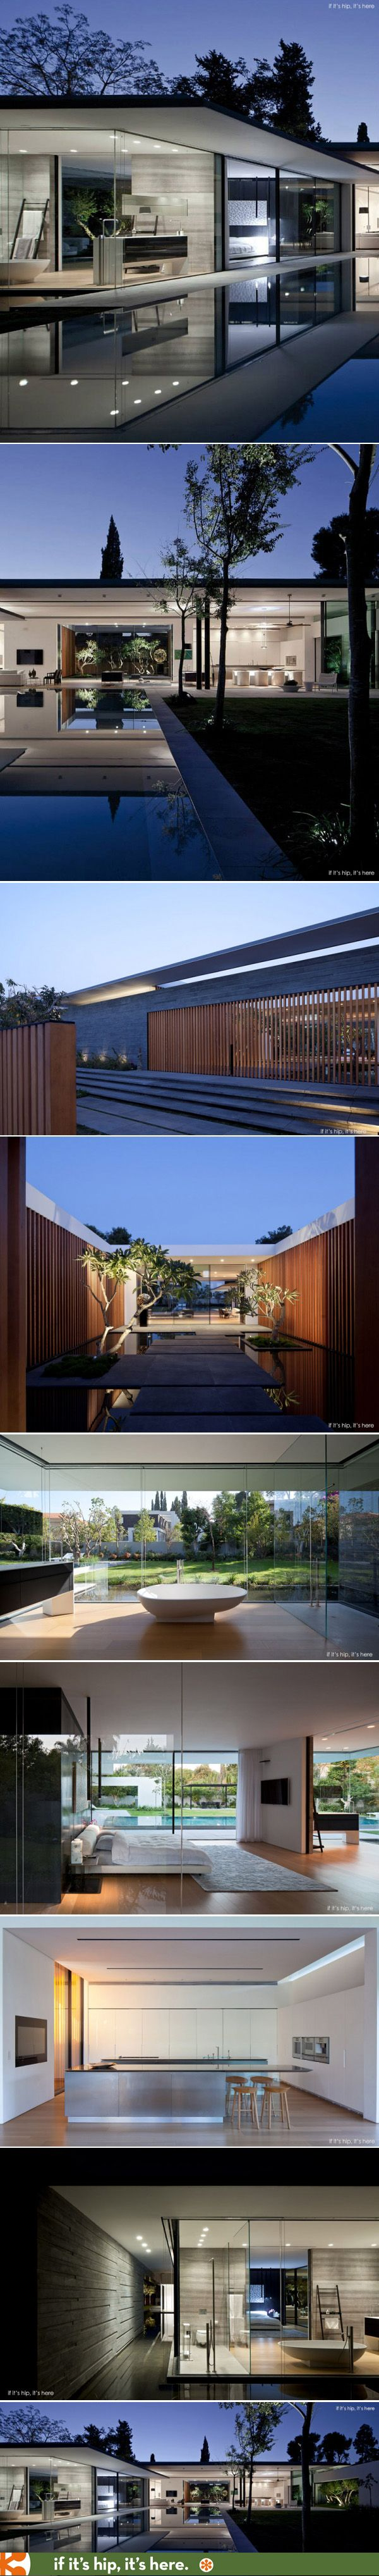 best idea images on pinterest landscaping architecture